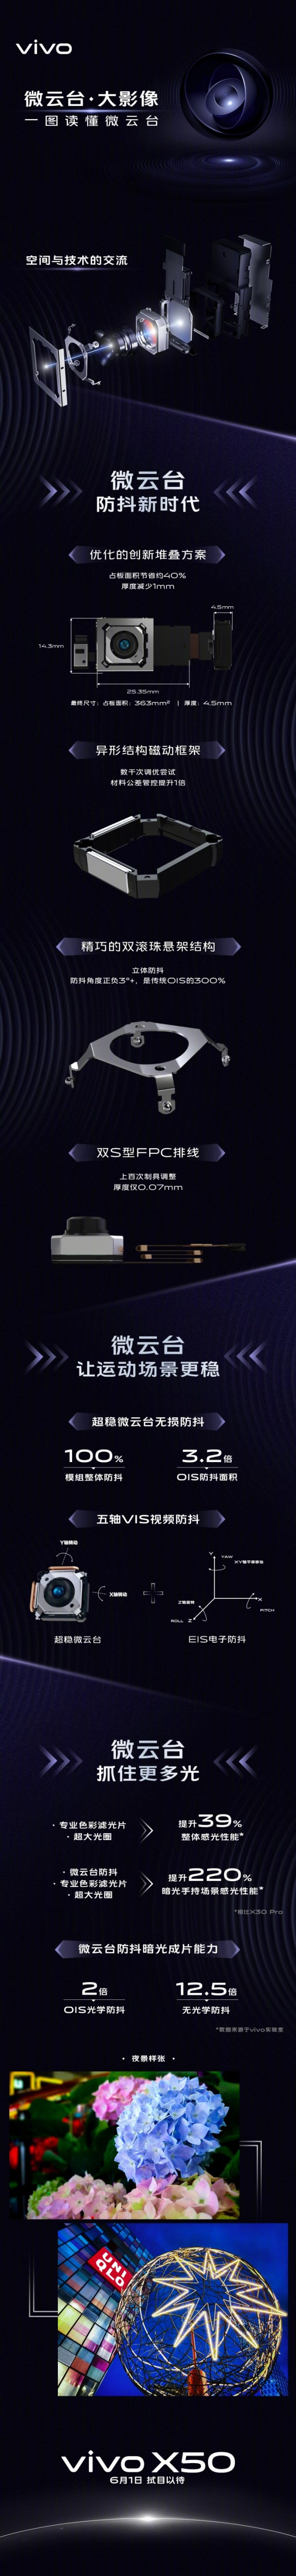 vivo explains X50 Pro's gimbal camera stabilization system, shows off results